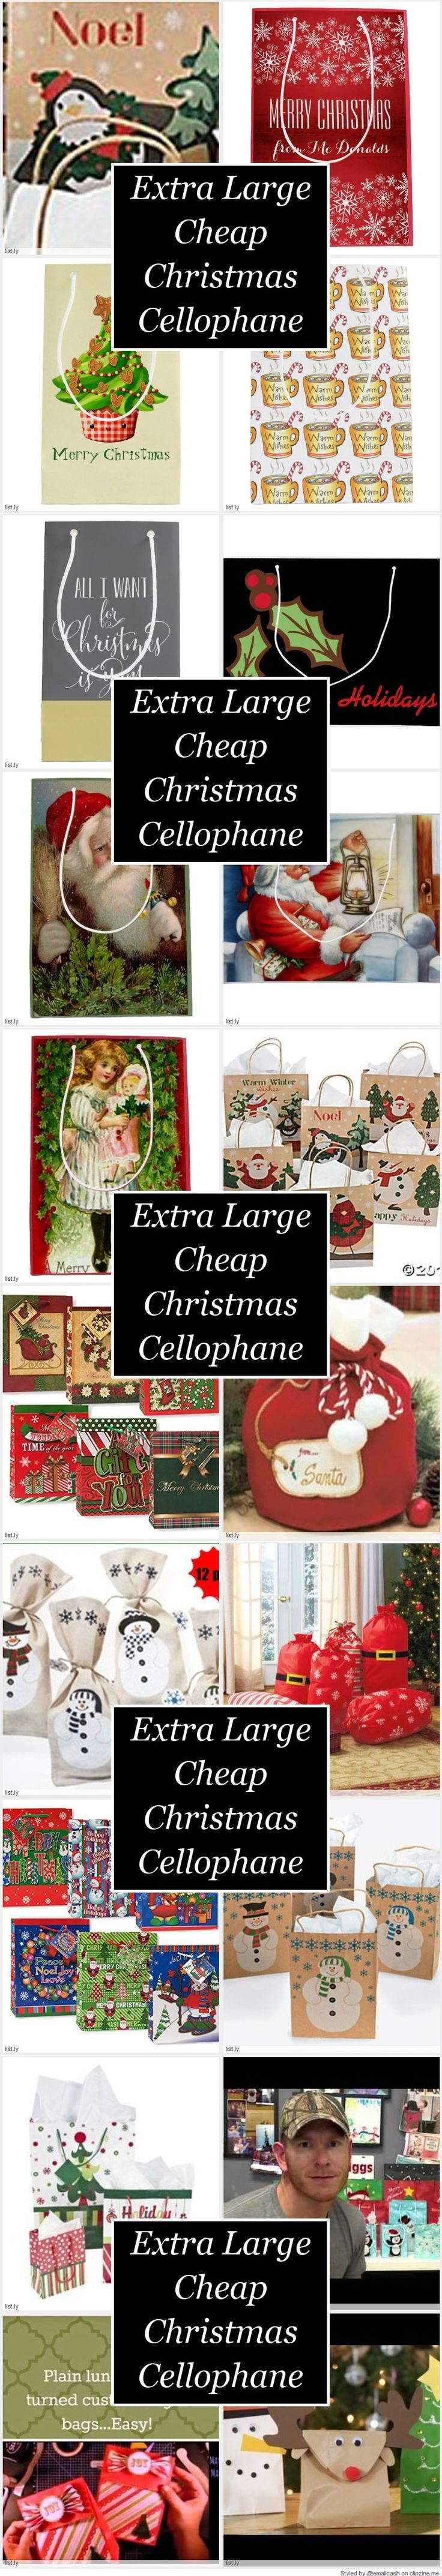 Extra Large Cheap Christmas Cellophane Gift Bags - You will probably need quite a few extra large cheap Christmas gift bags to put all of your Christmas presents in.